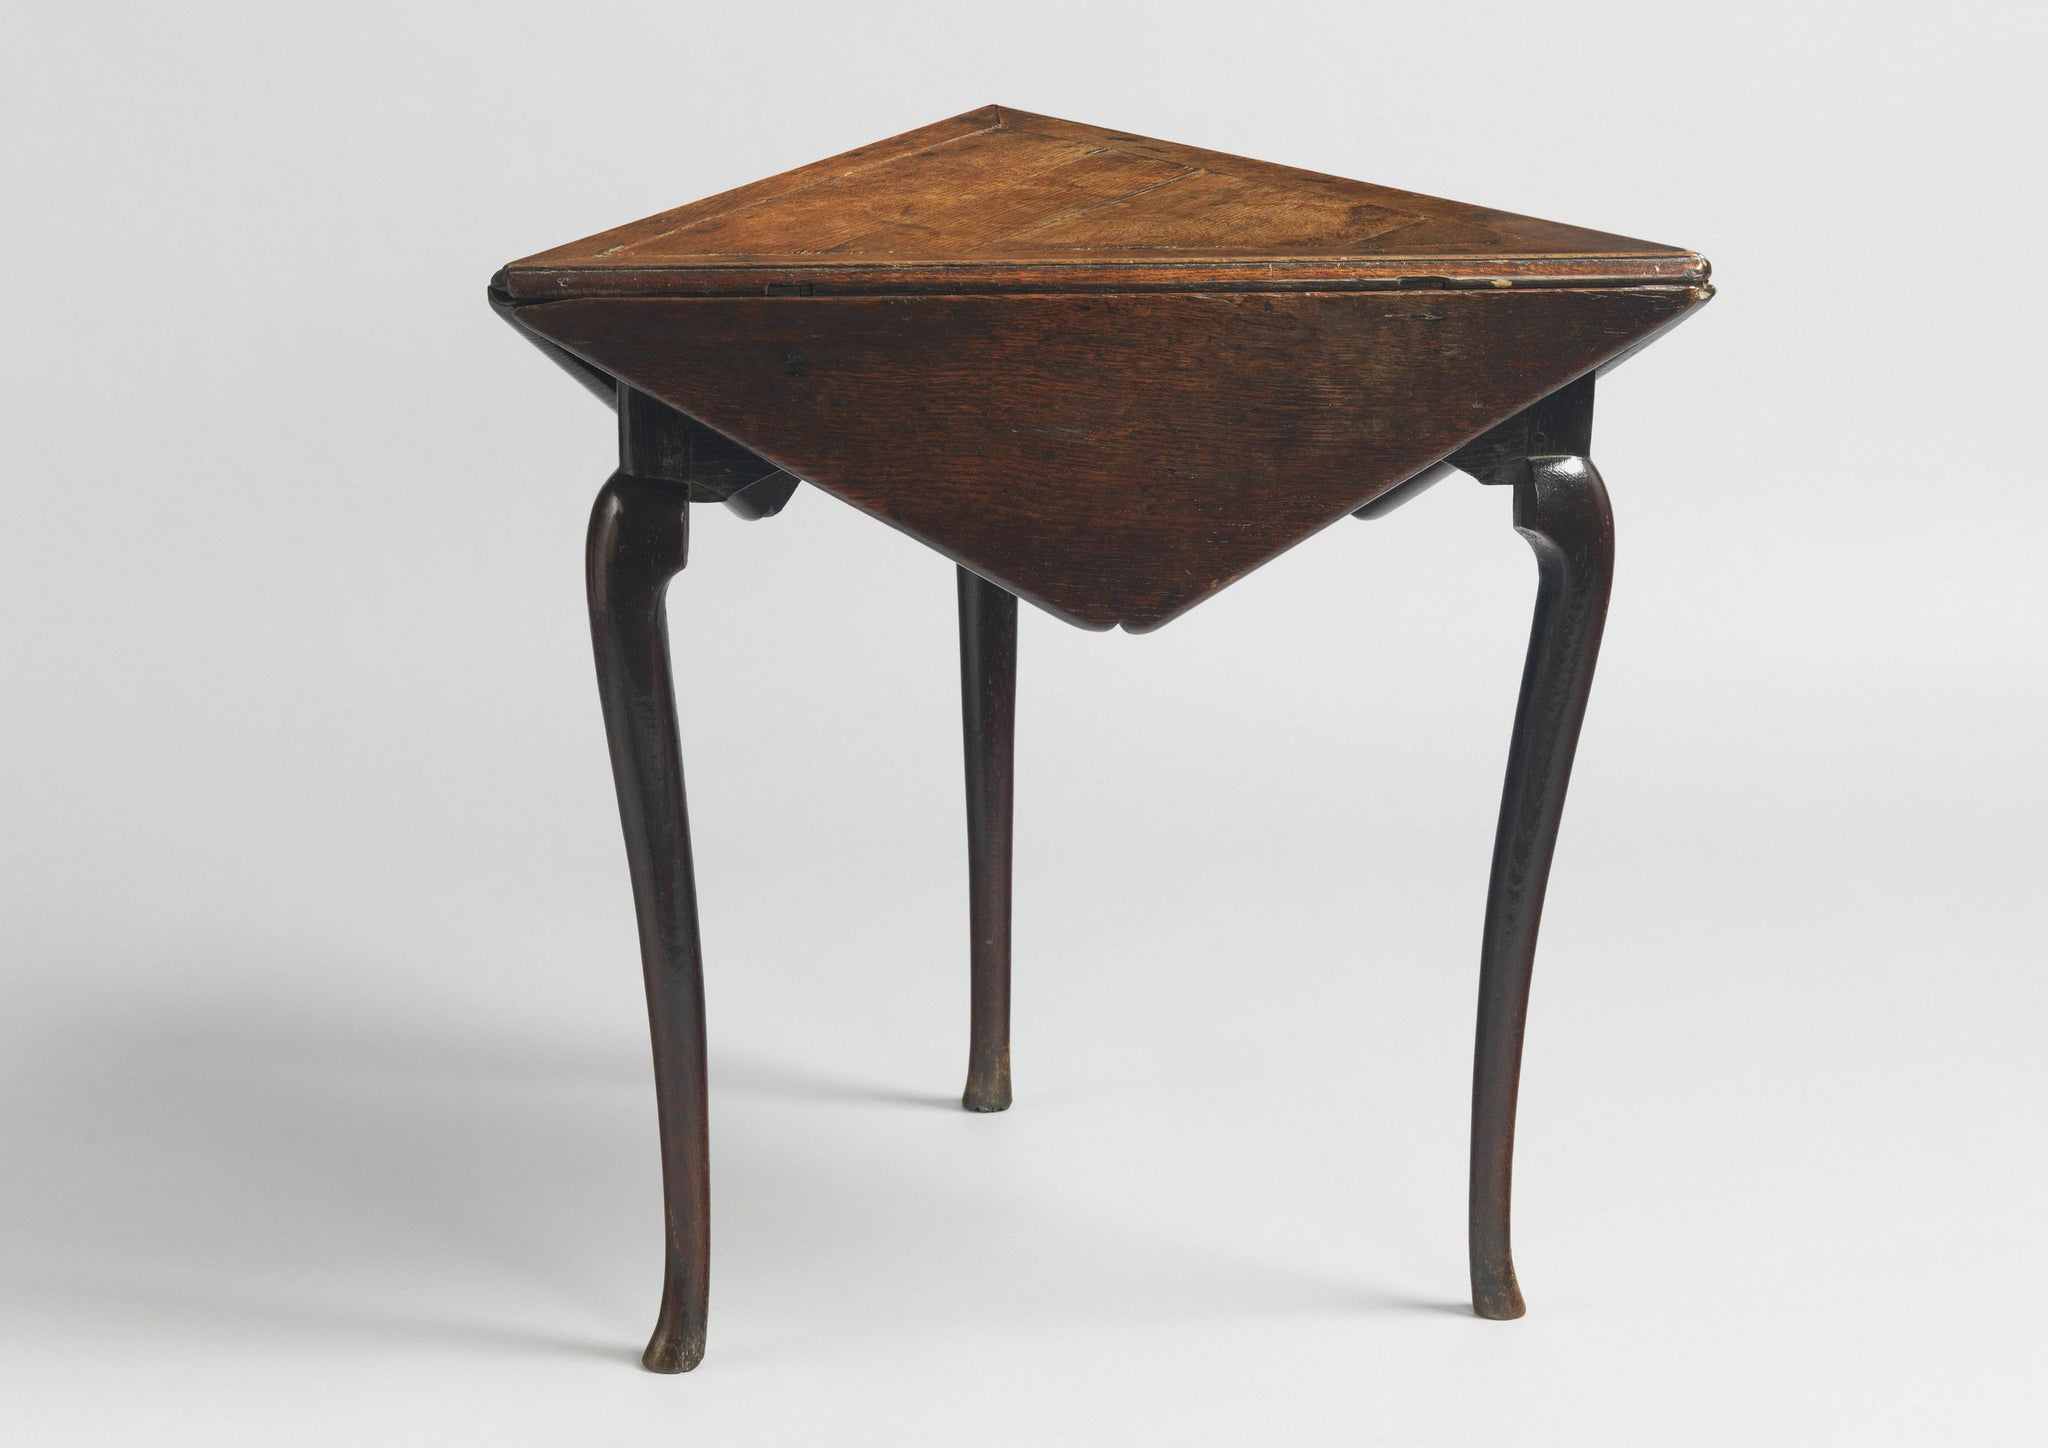 Rare Cabriole Leg Drop Leaf Table